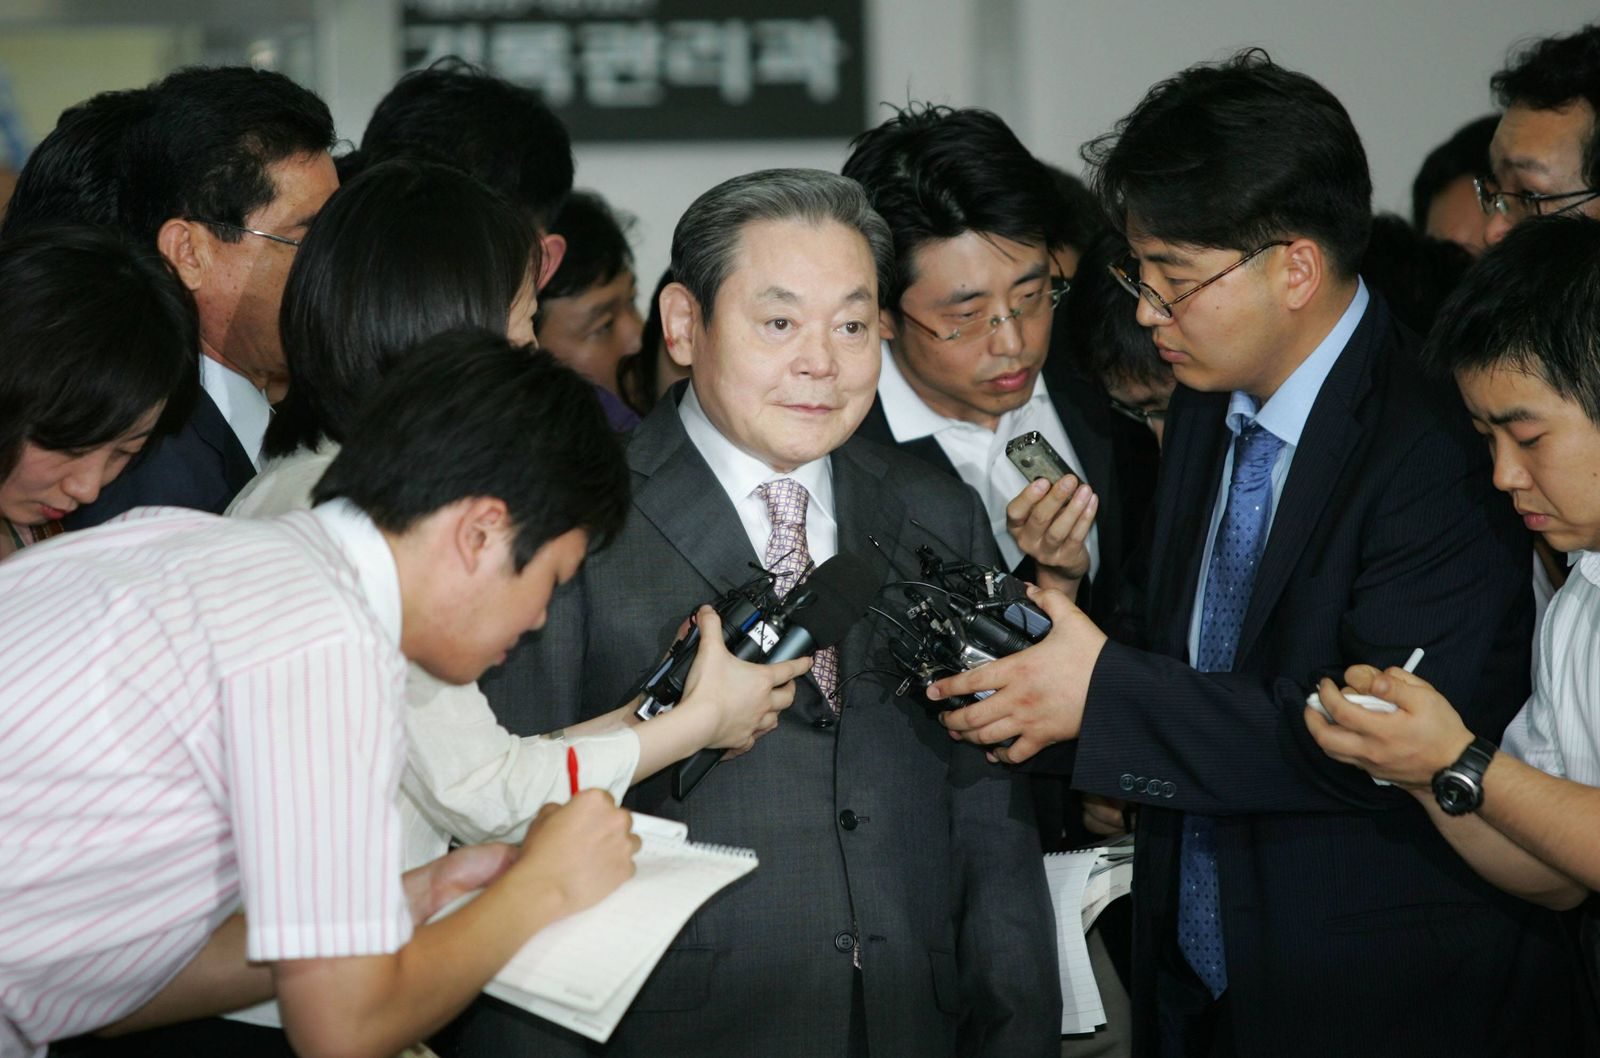 Jul 16 2008 Seoul South Korea LEE KUN HEE former Samsung Group chairman is surrounded by rep